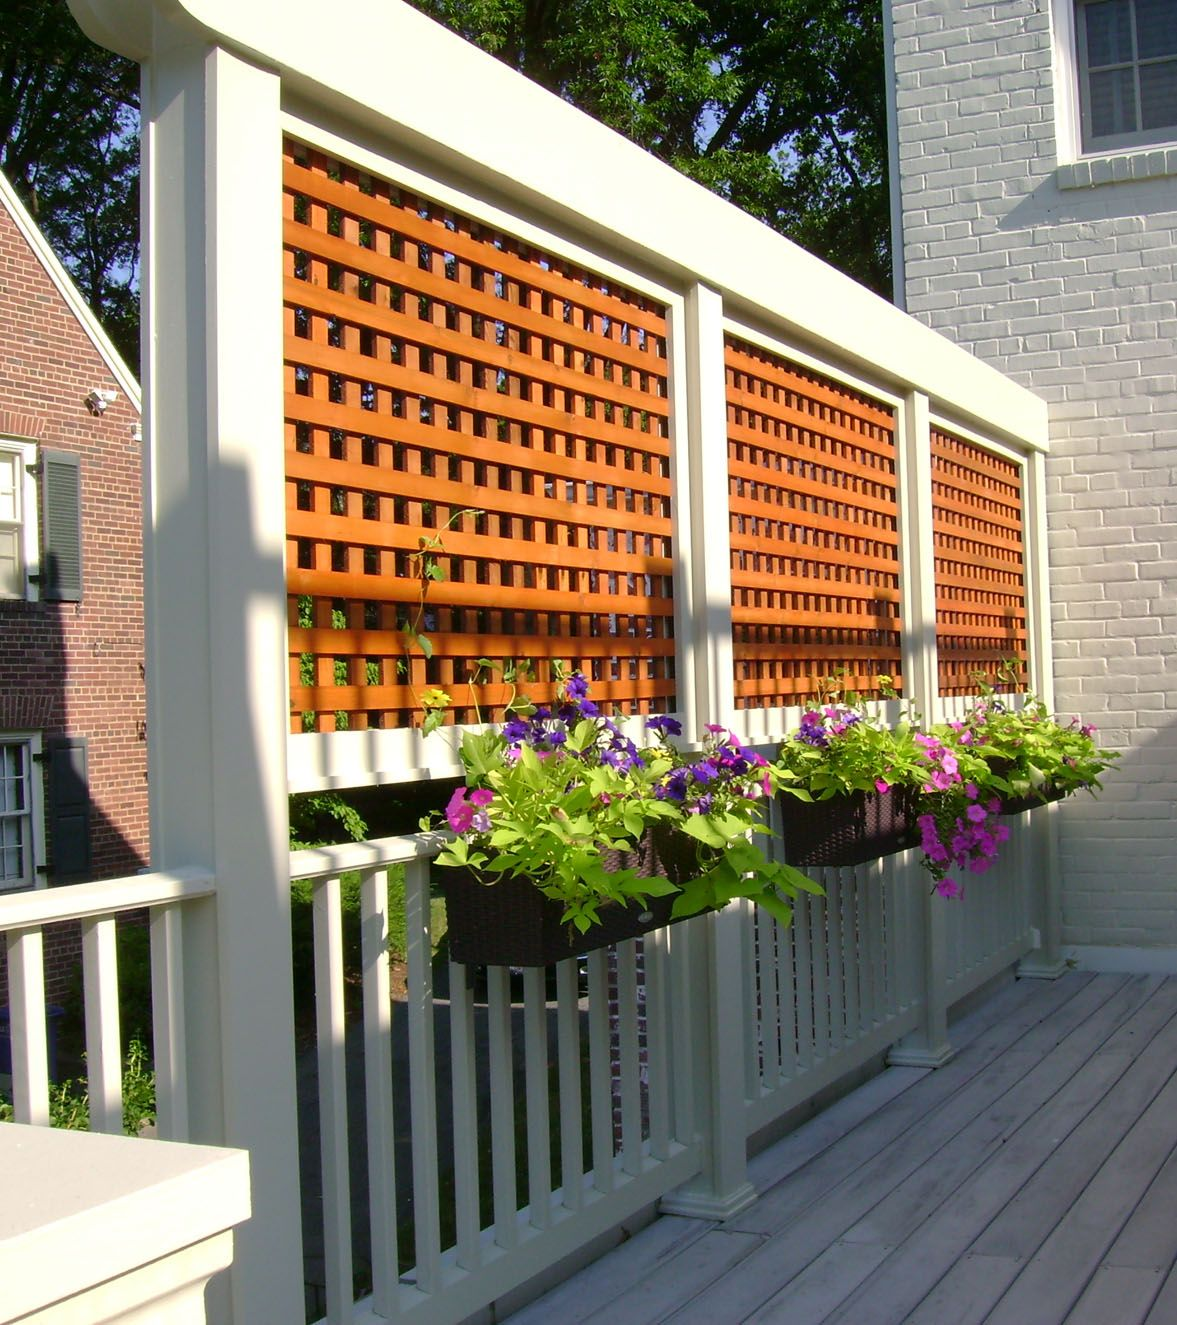 A little privacy makes for good neighbors petro design for Hanging privacy screens for decks